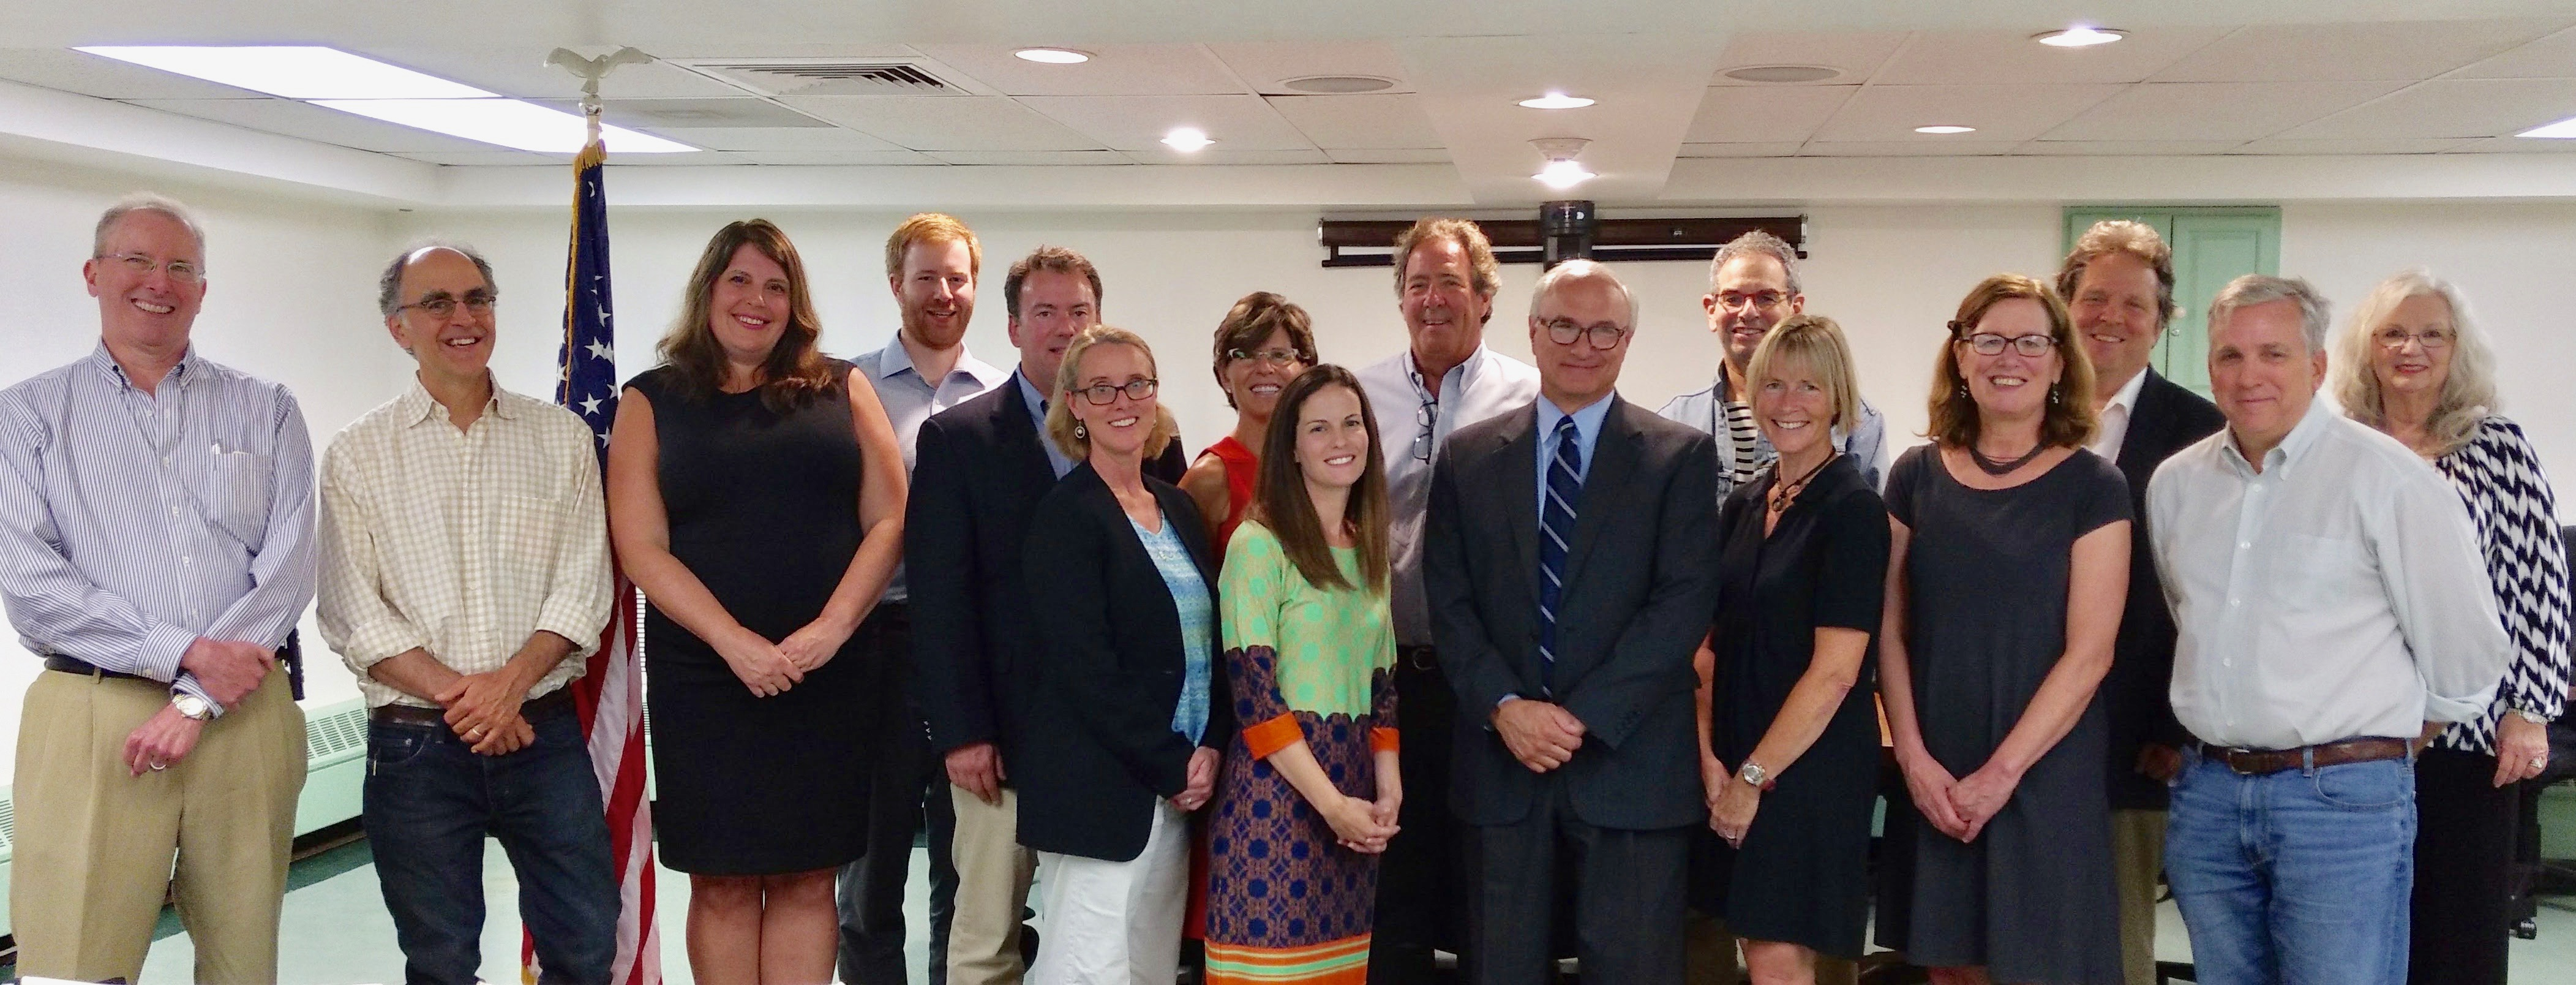 Democrats' 2017 local candidates, pictured with Ridgefield First Selectman Rudy Marconi (left to right): Arny DiLaura, Steve Saloom, Mary Dougherty, Joe Dowdell, Sean Connelly, Amanda Cordano, Amy Macartney Freidenrich, Carina Borgia-Drake, Joe Fossi, Rudy Marconi, Charles Robbins, Margaret Stamatis, Kathleen Holz, Mark Seavy, Doug Silver, Anne Cutter (not pictured: Temi Bova, Terry Bearden-Rettger, and Jeff Lundberg).